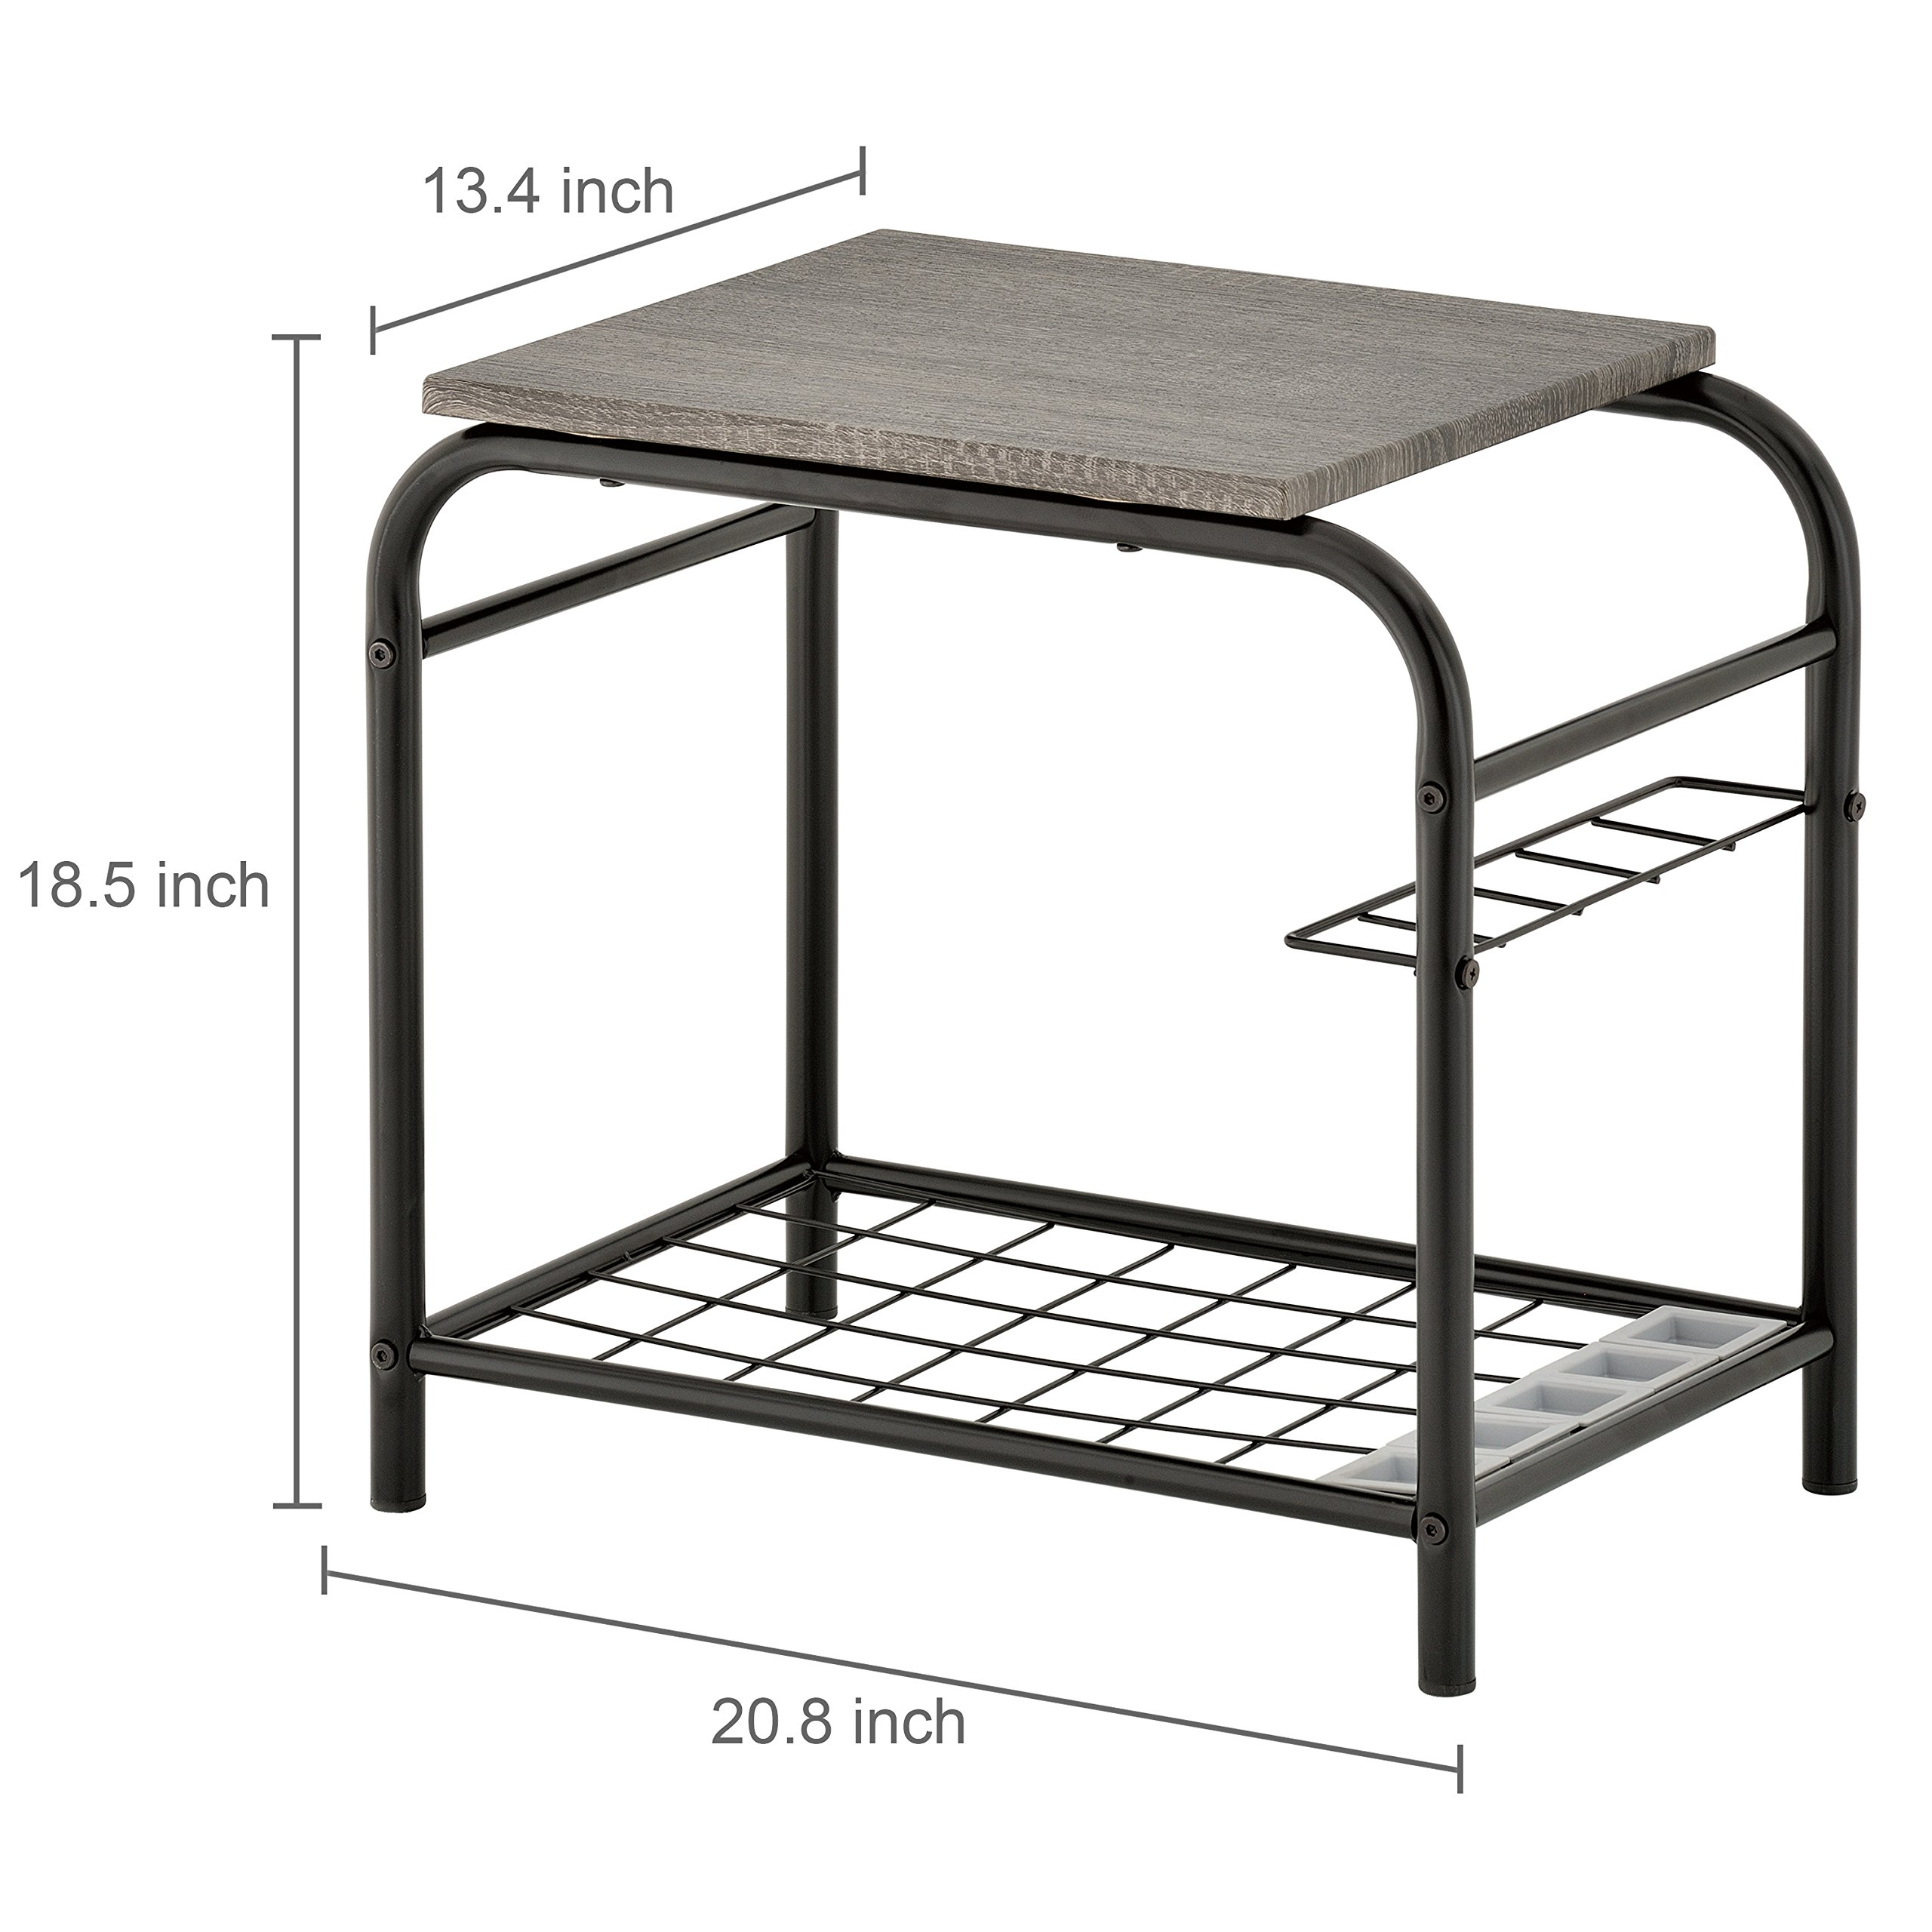 MyGift 3-in-1 Metal Entryway Bench with Wood Seat, Shoe Storage & Umbrella Holder by MyGift (Image #6)